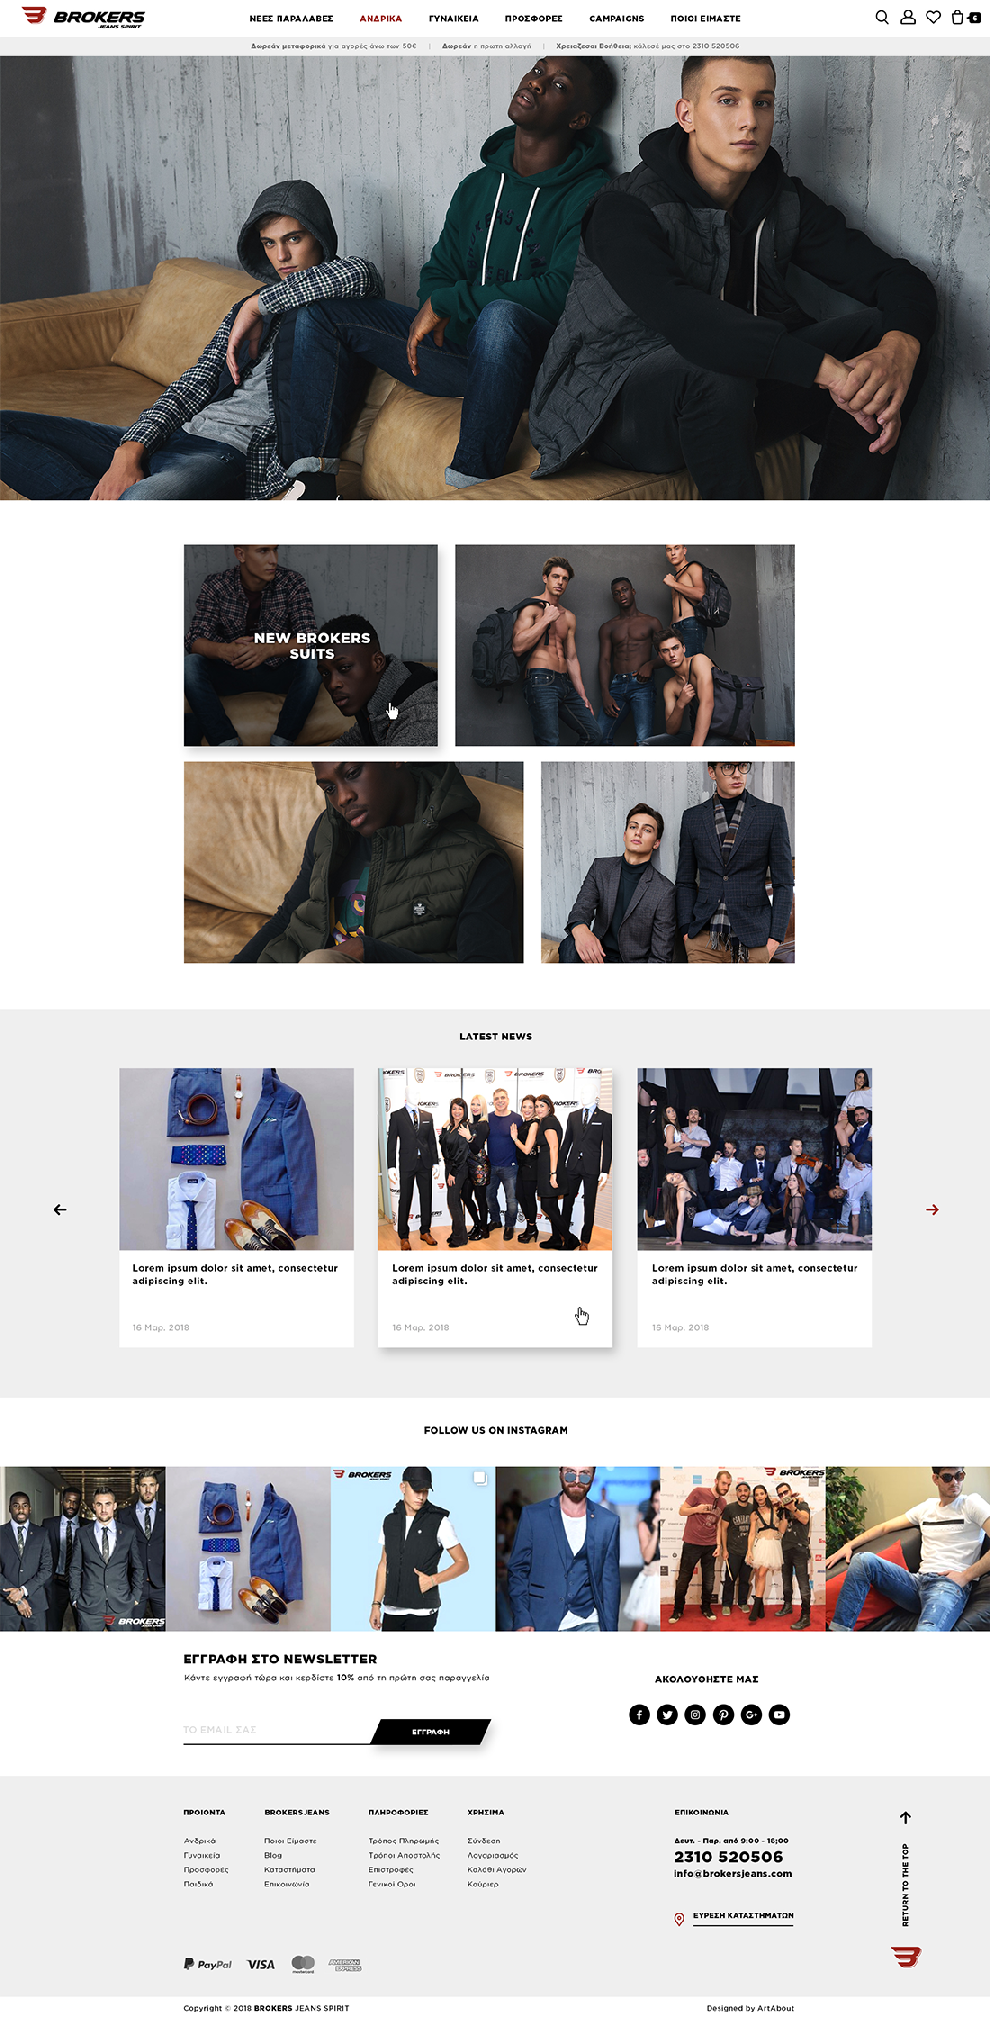 Magento Redesign Brokers Jeans Homepage